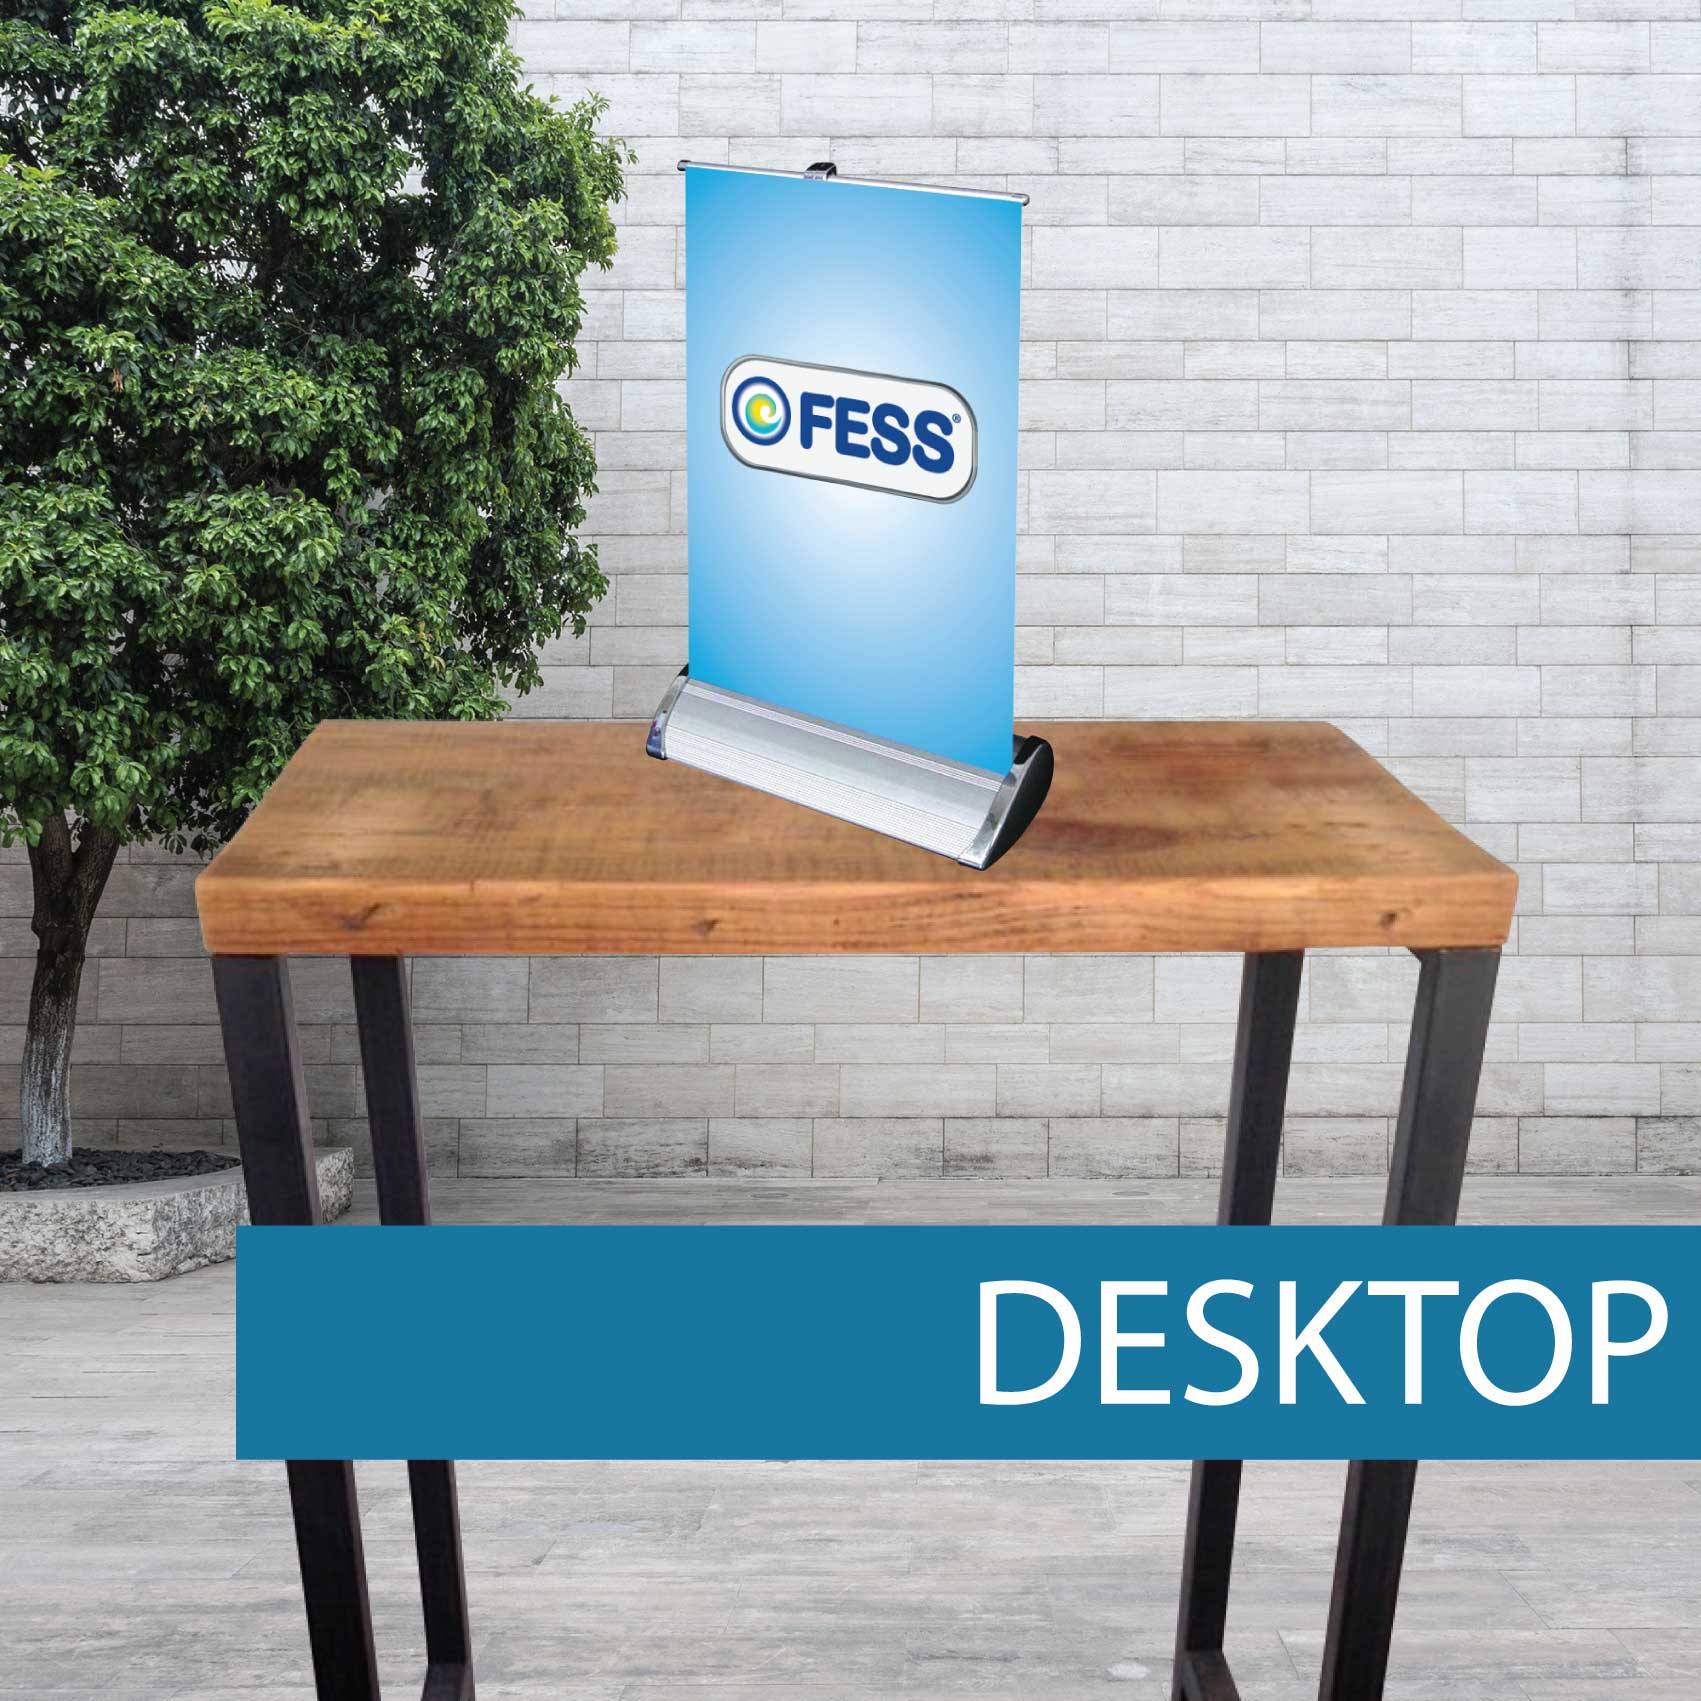 Desktop pull up banner